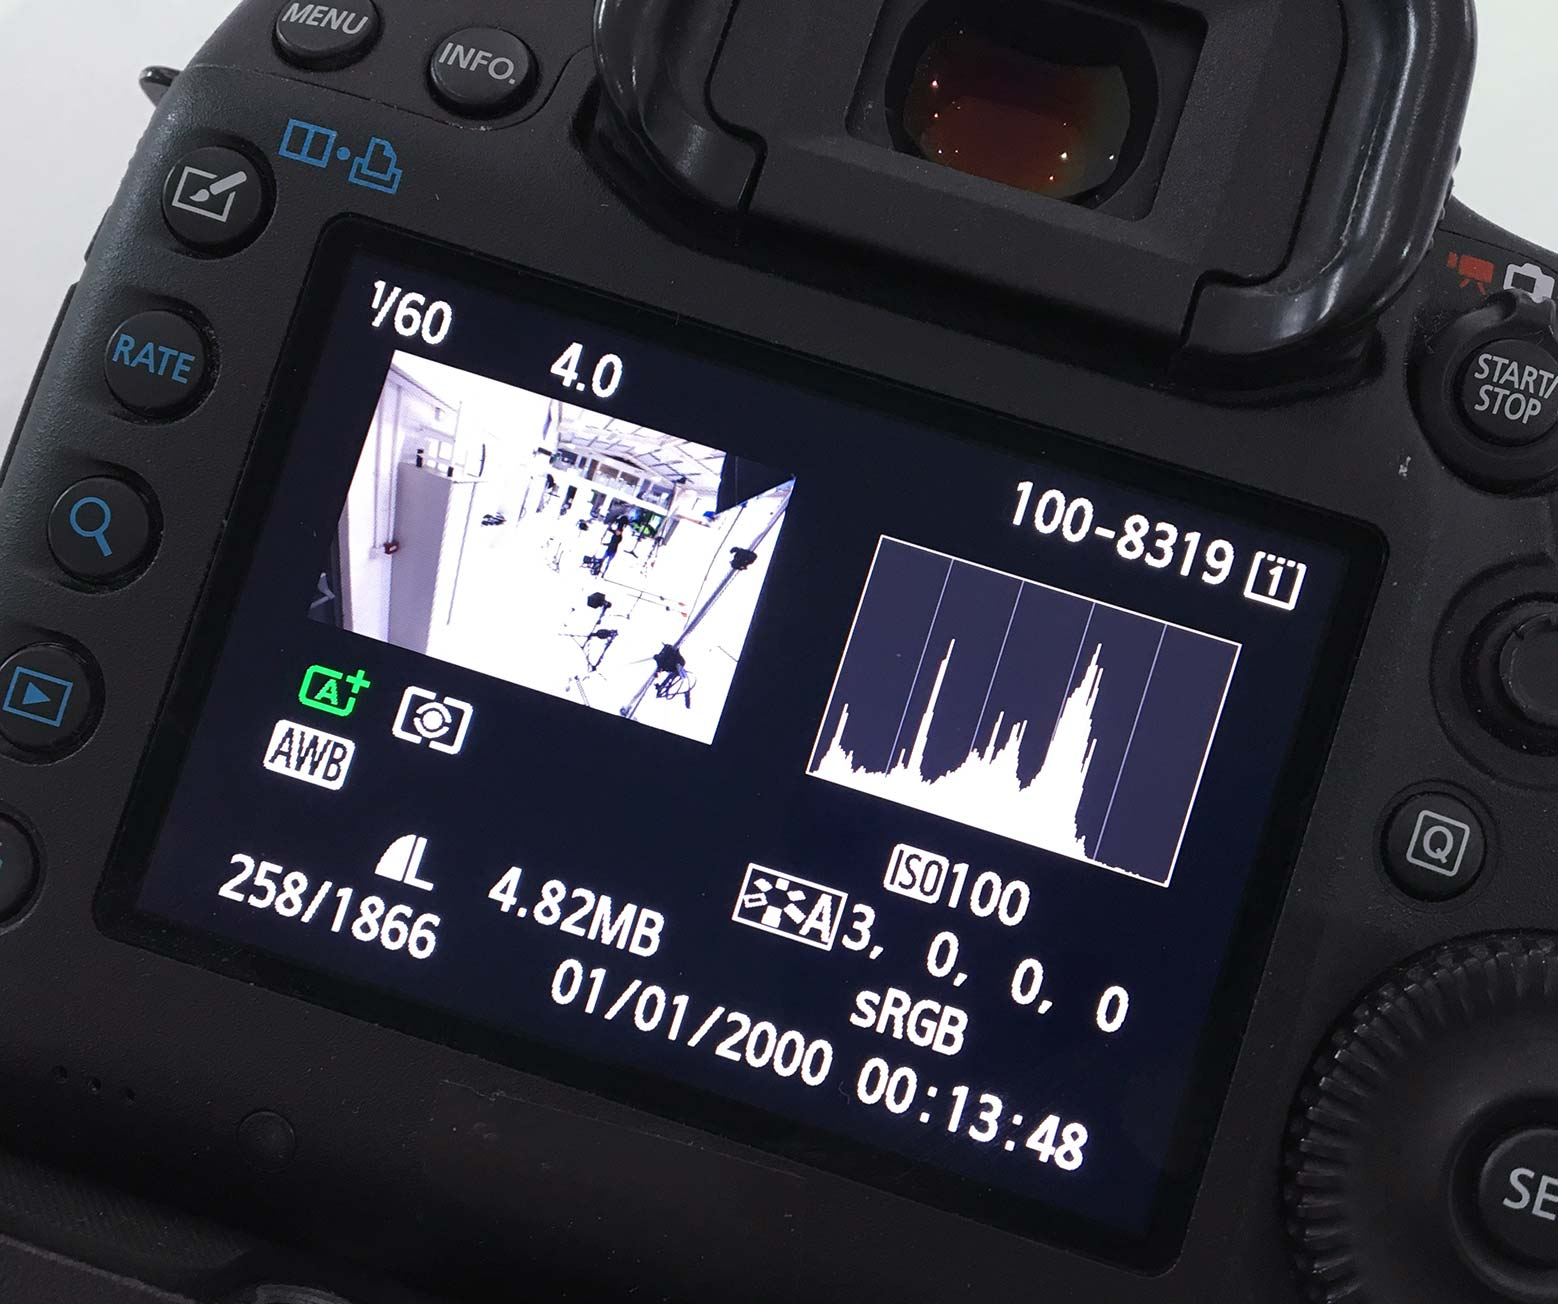 camera histogram view